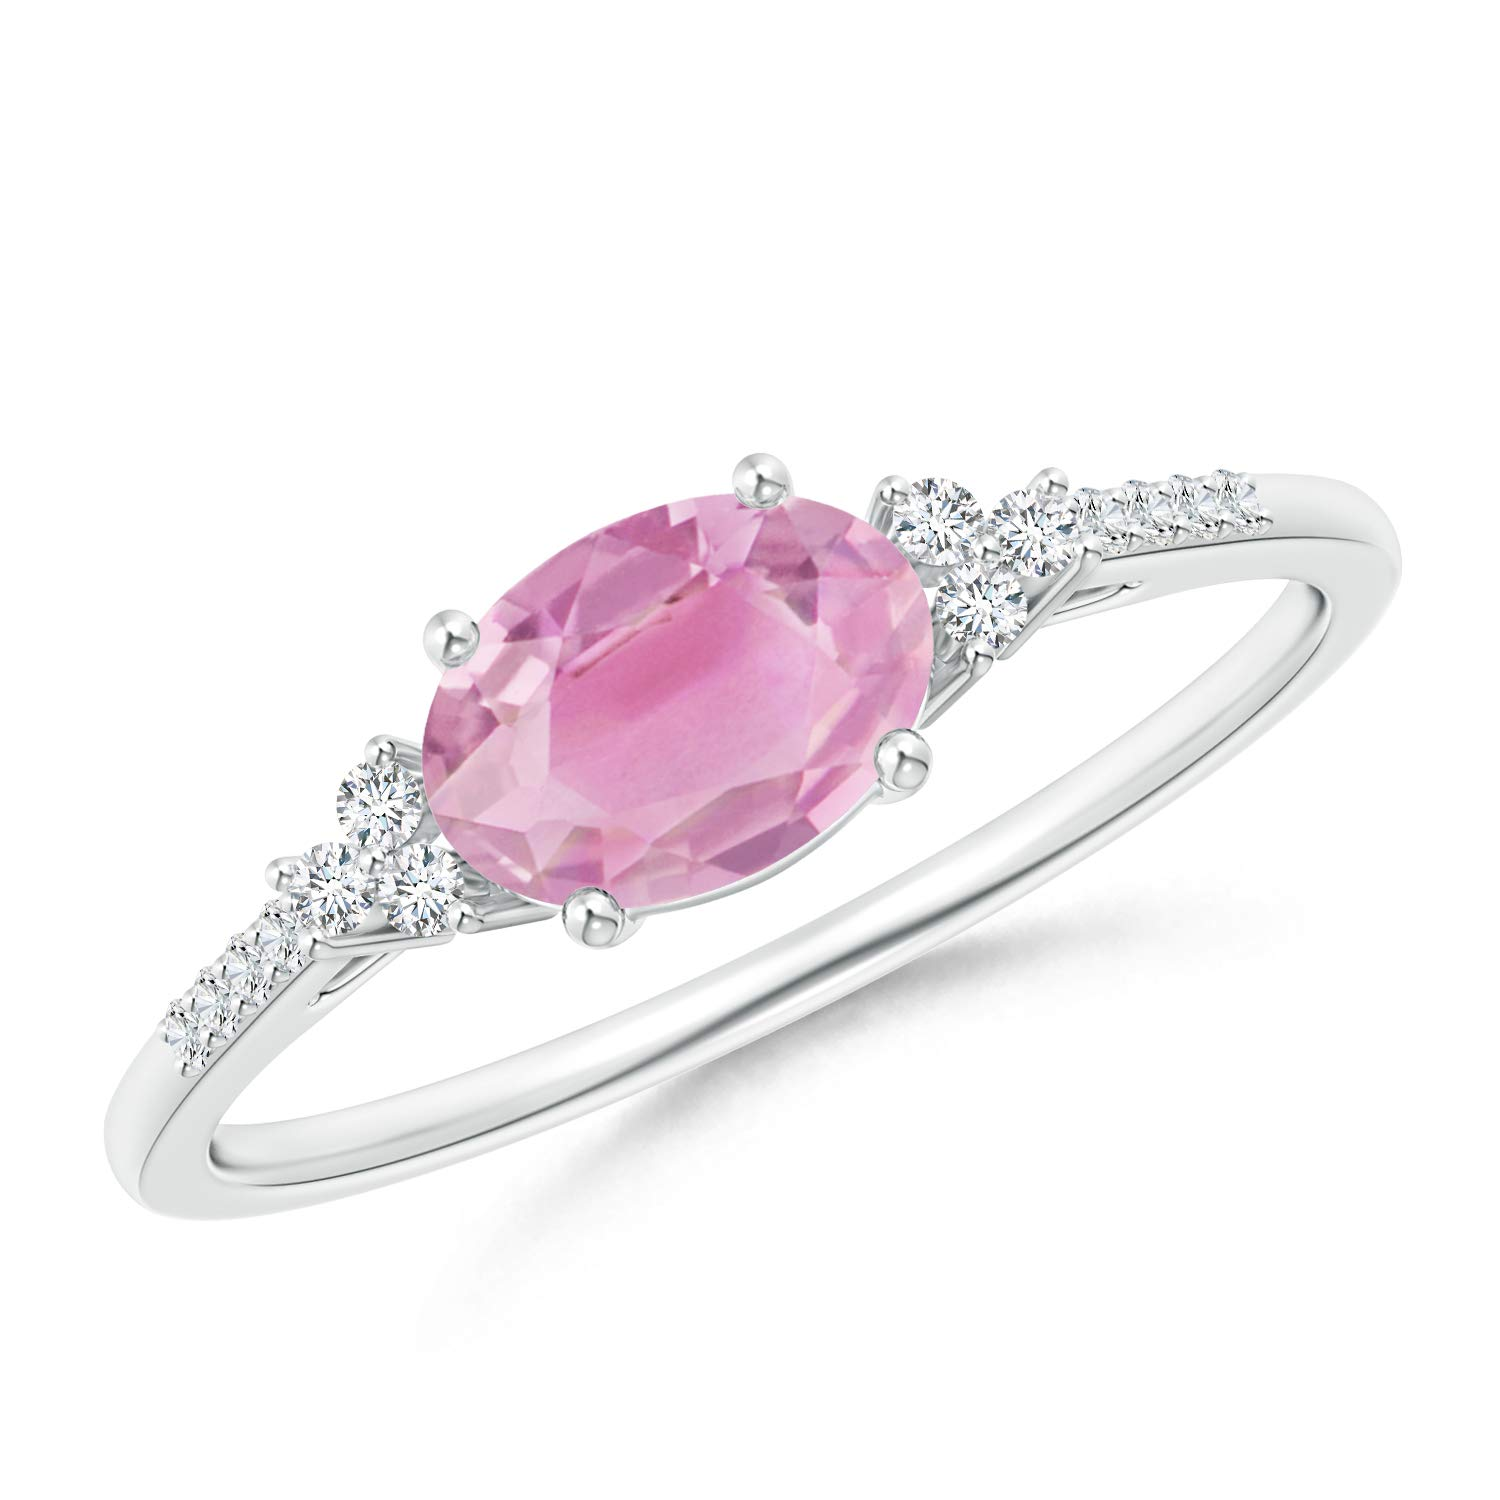 7x5mm Pink Tourmaline Horizontally Set Oval Pink Tourmaline Solitaire Ring with Trio Diamond Accents